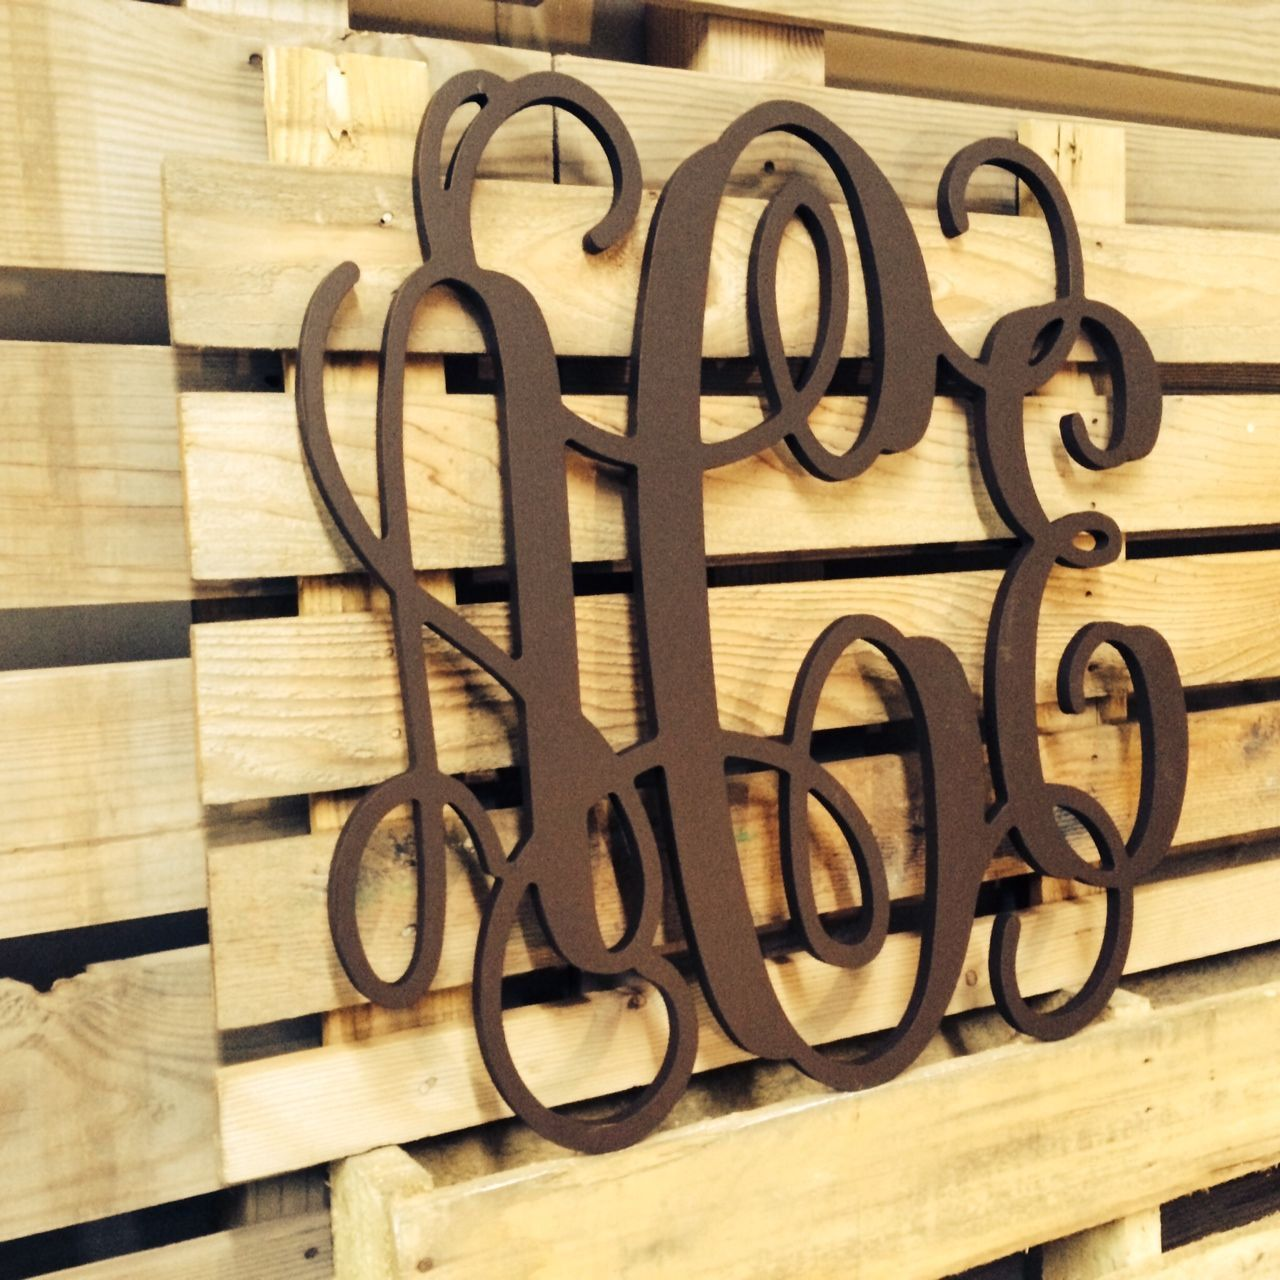 Extra Large Wooden Monogram | Unpainted | 32"|1280|1280|?|4a338c7a0d93b9eeef33df22502fd4ad|False|UNLIKELY|0.33150622248649597